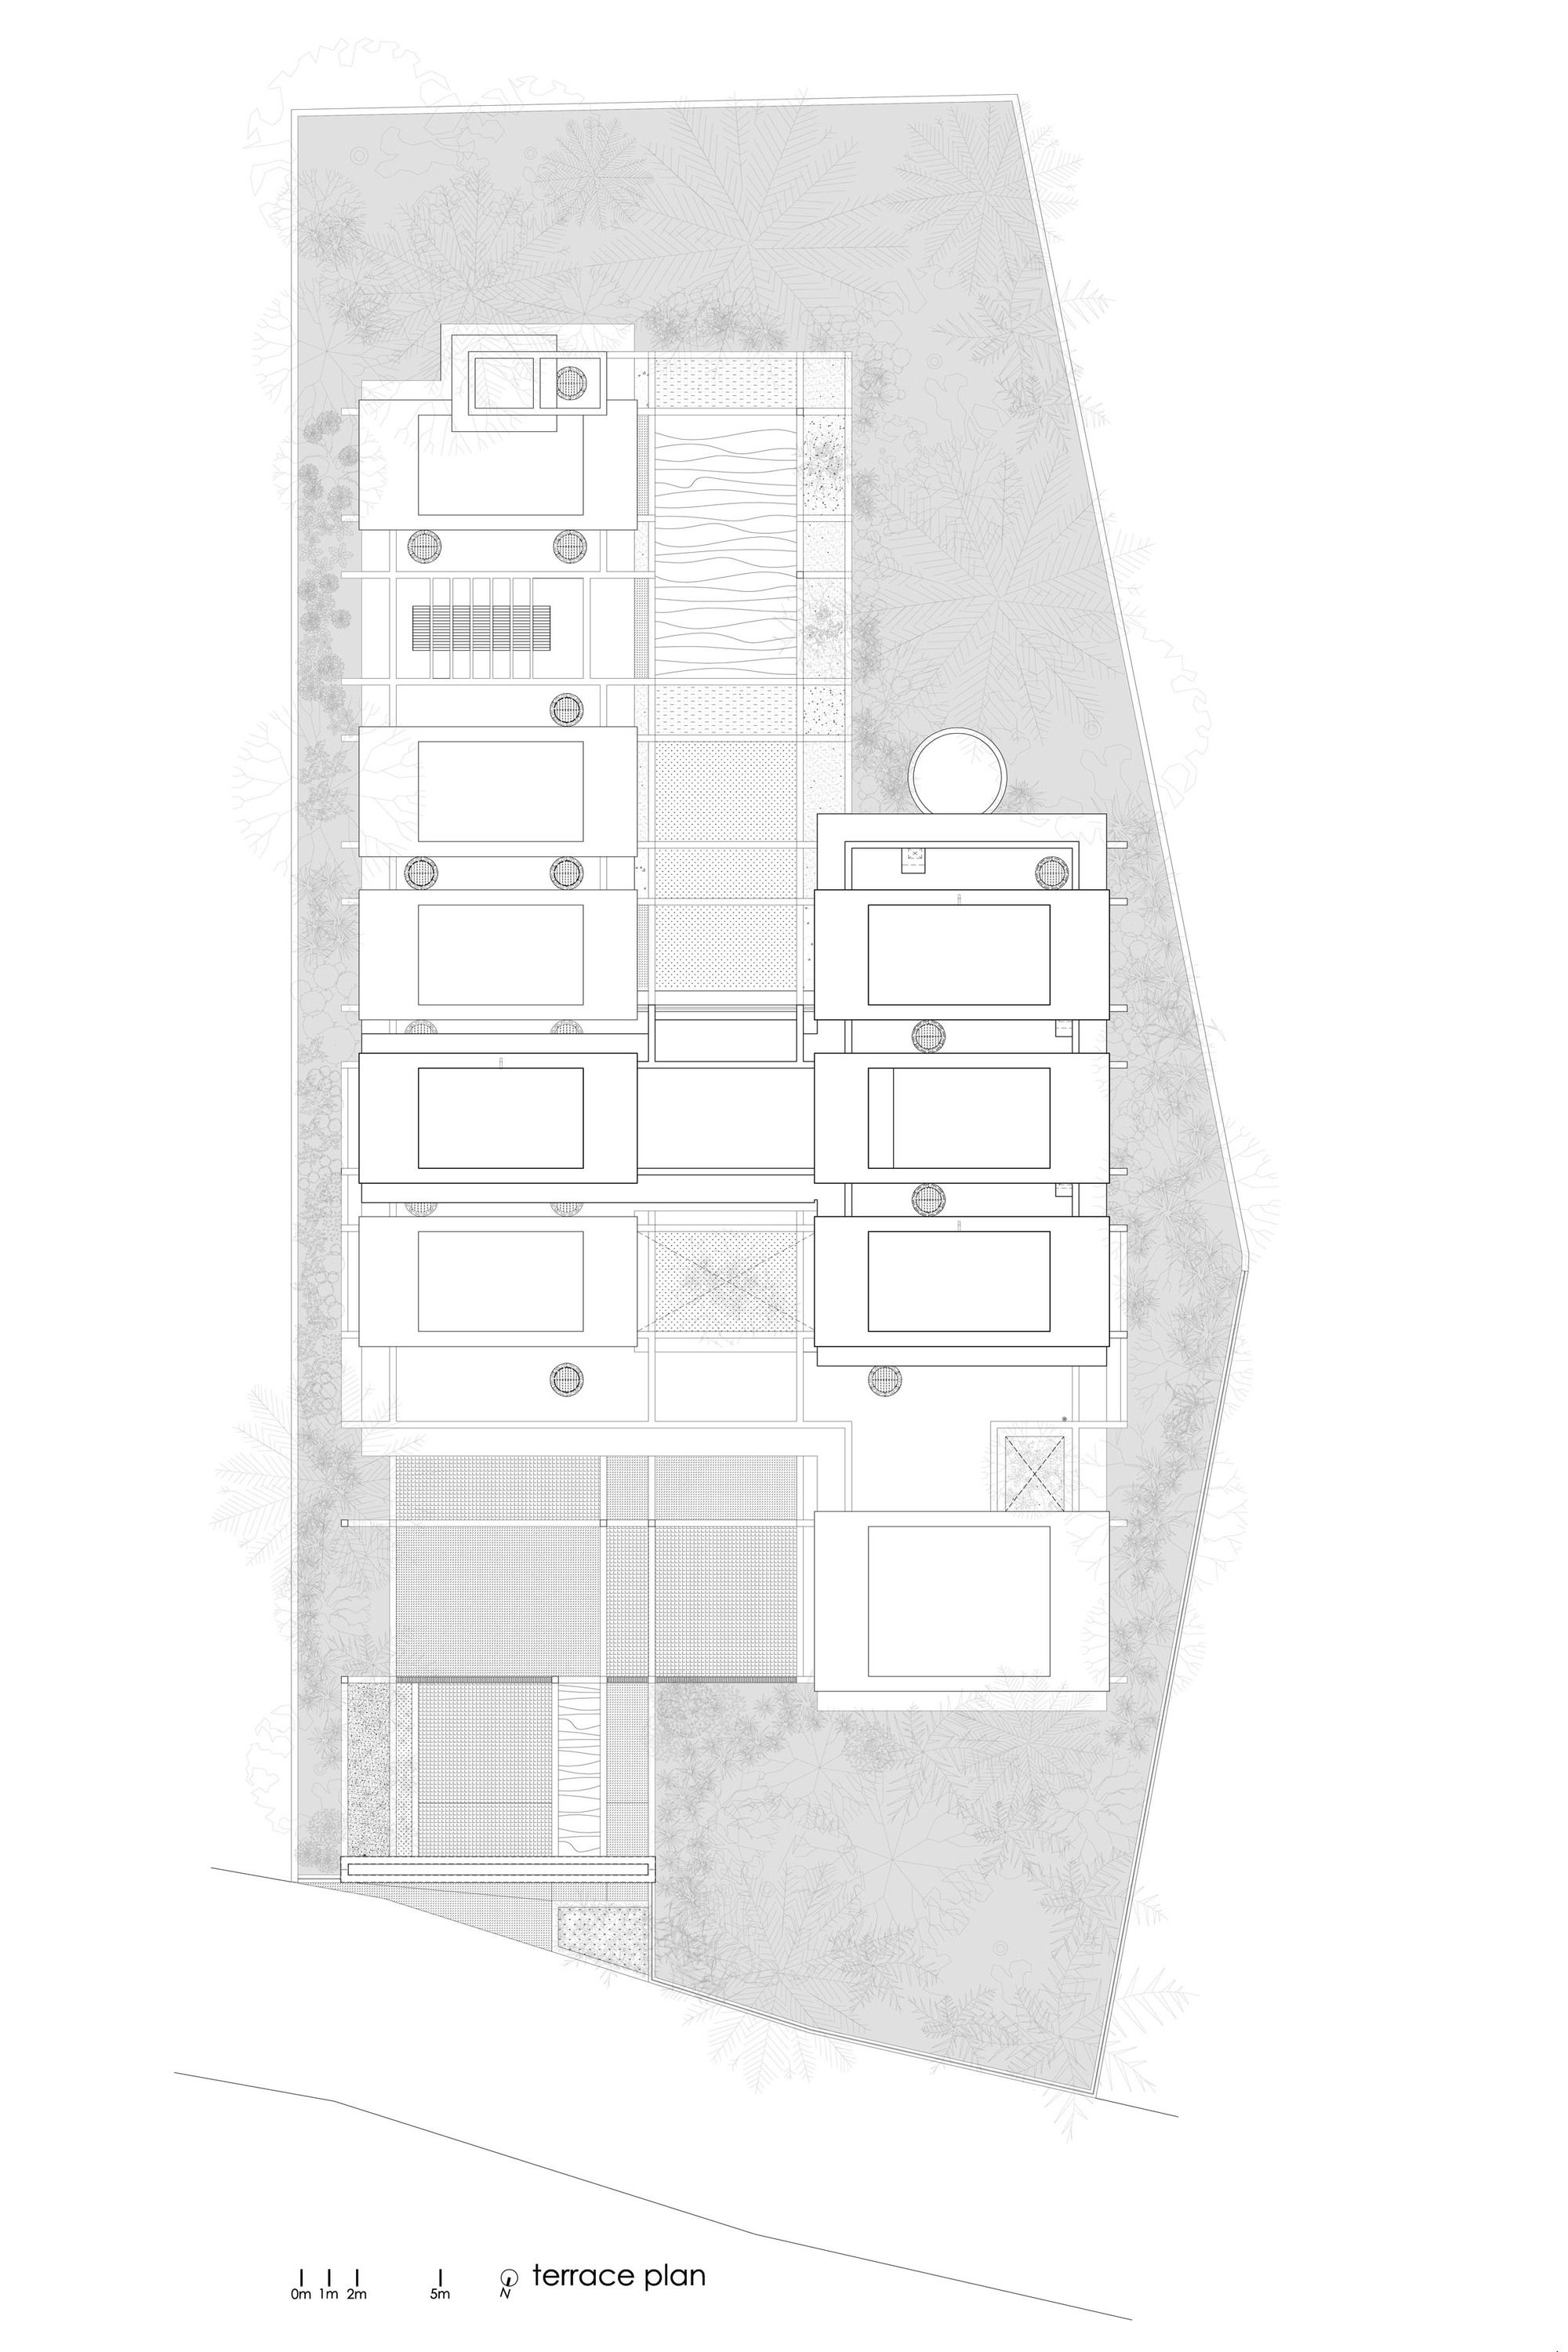 m3 _b03_The_HG_-_Terrace_Plan_With_Trees.jpg